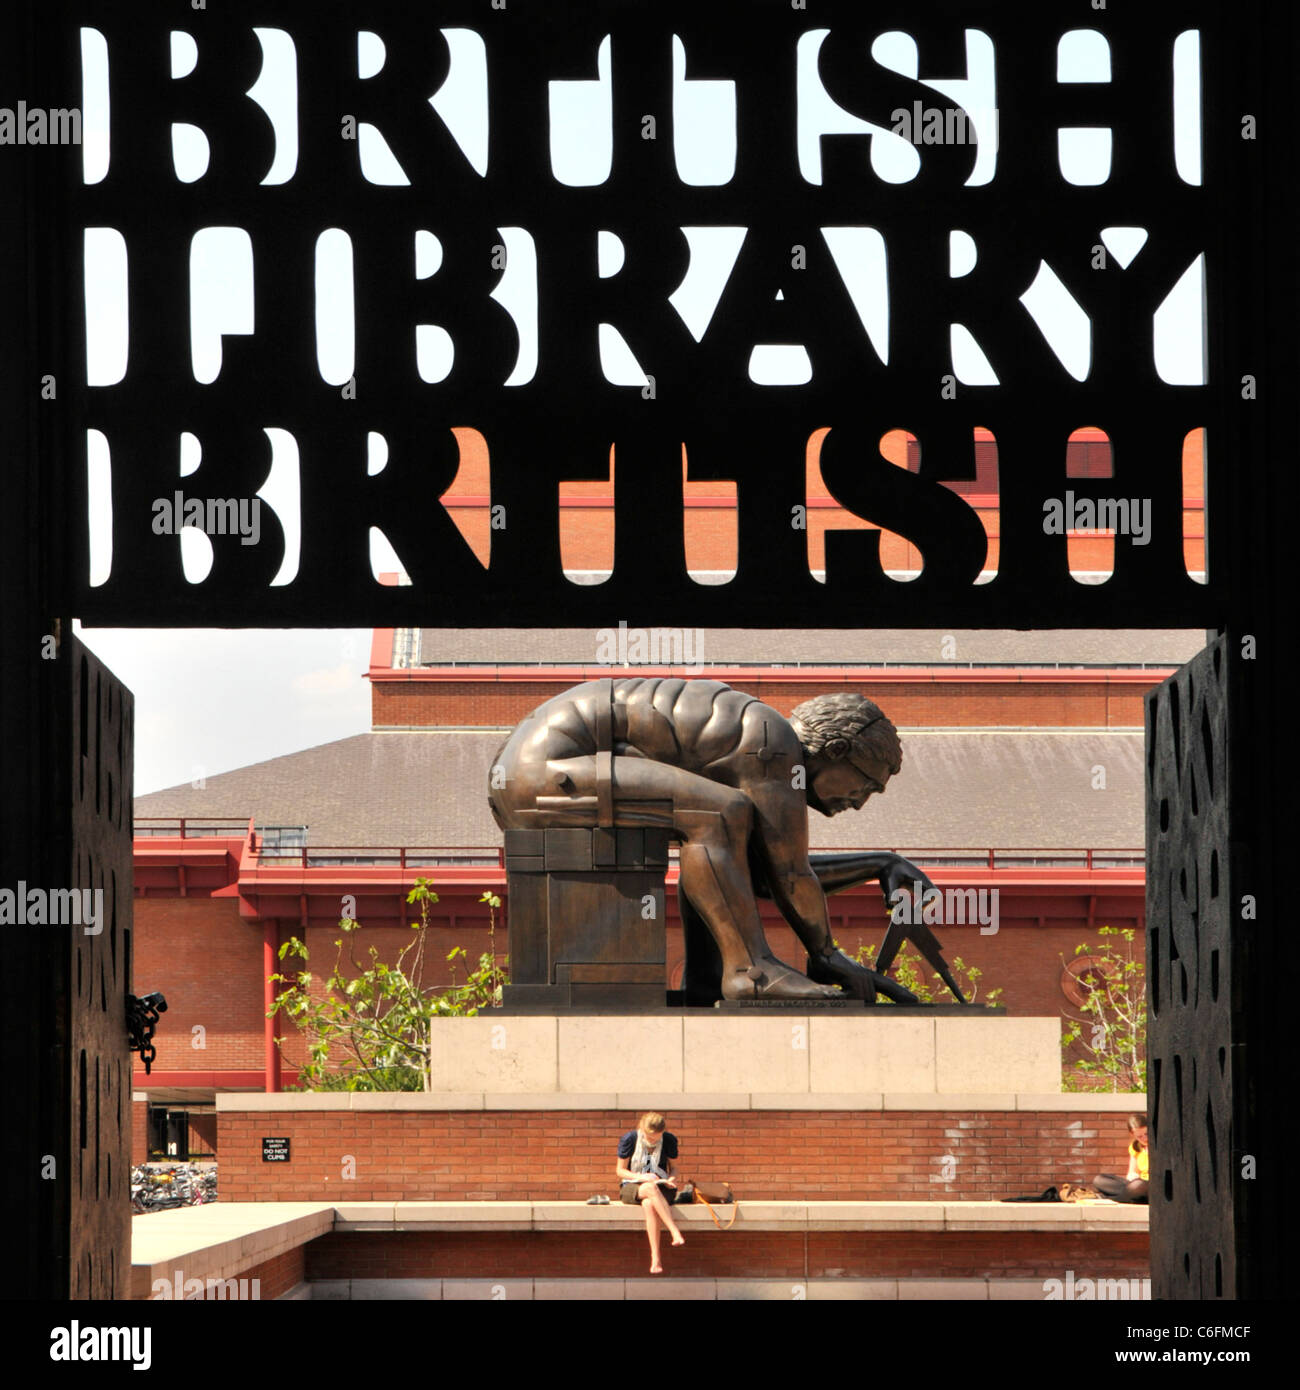 Bronze statue of Sir Isaac Newton by Eduardo Paolozzi at the British Library sign silinhoutte St Pancras Camden - Stock Image